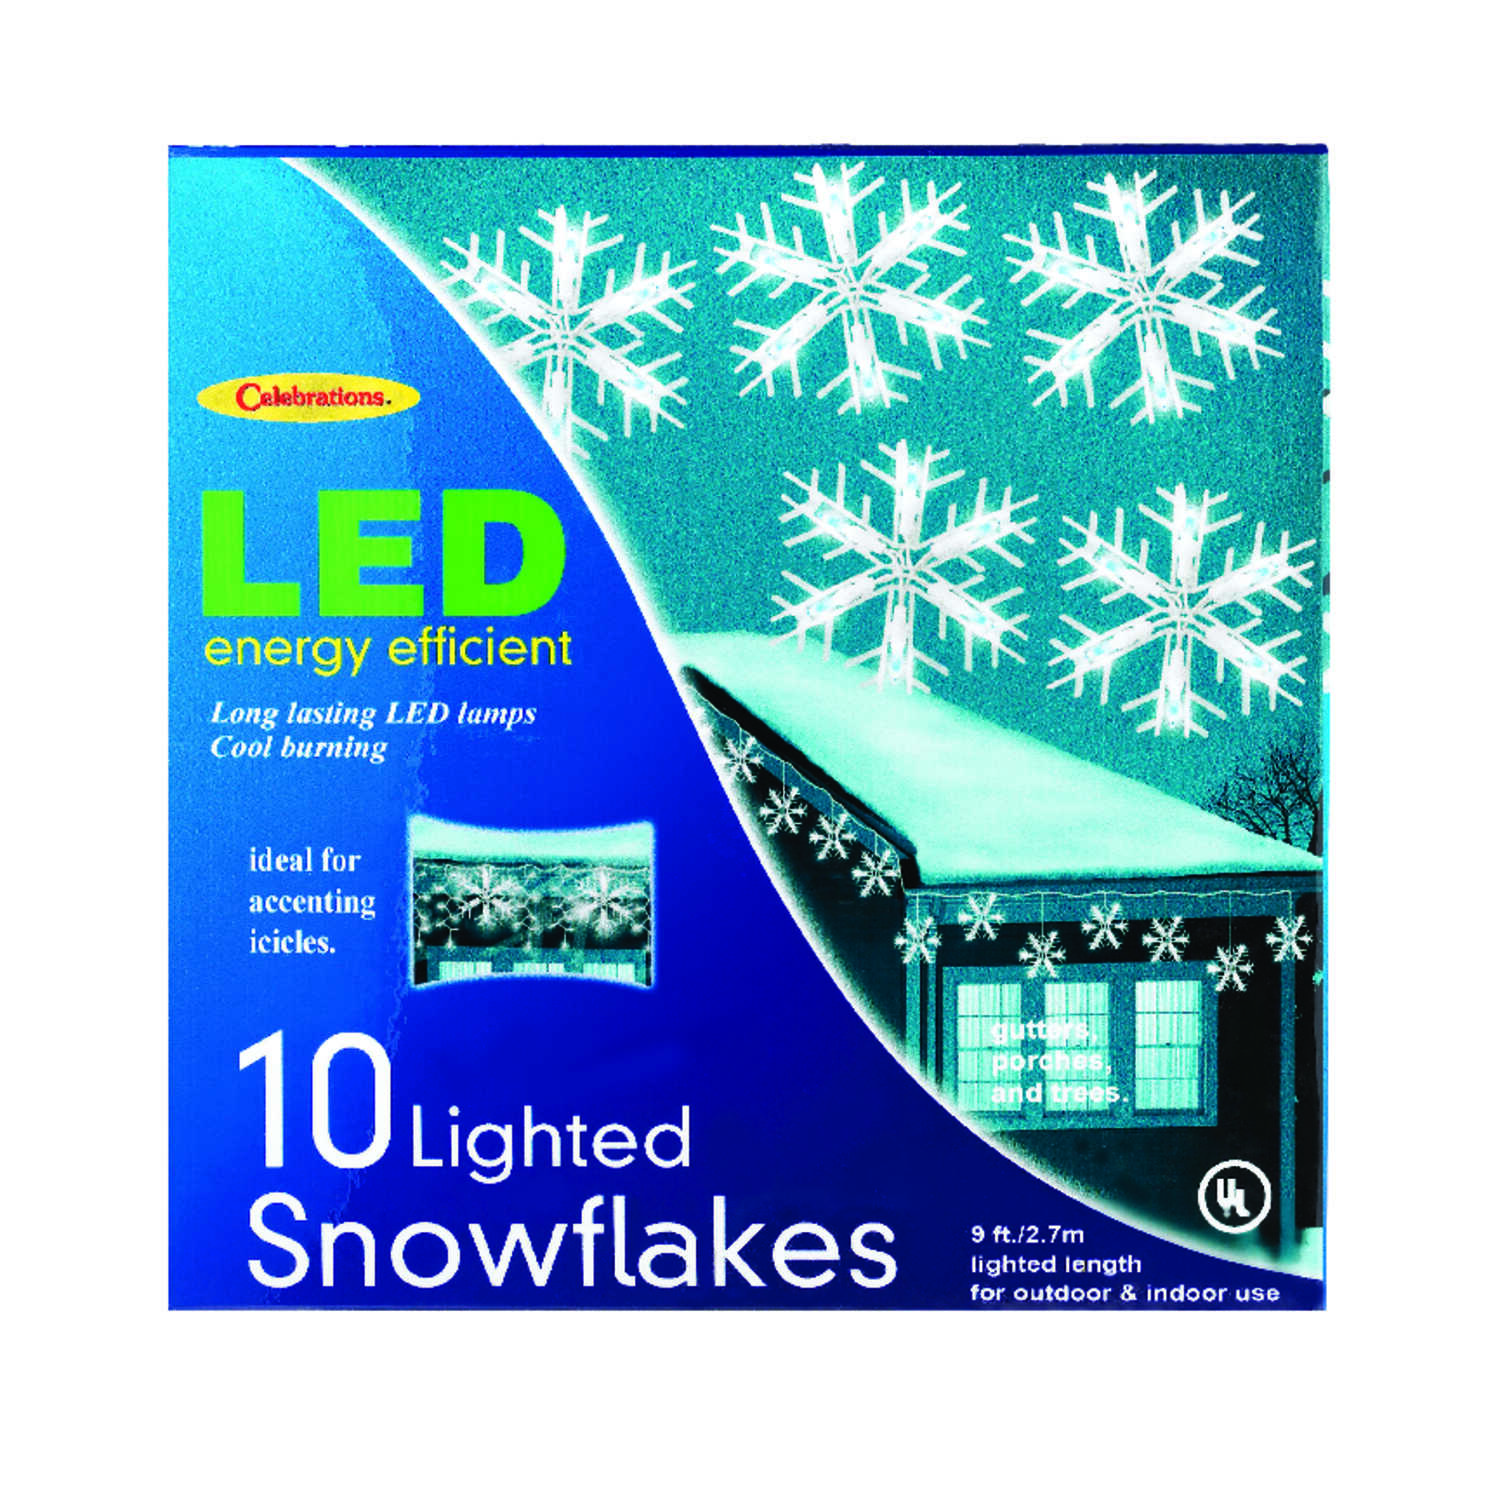 Celebrations  LED  Snowflake  Light Set  White  9 ft. 10 lights